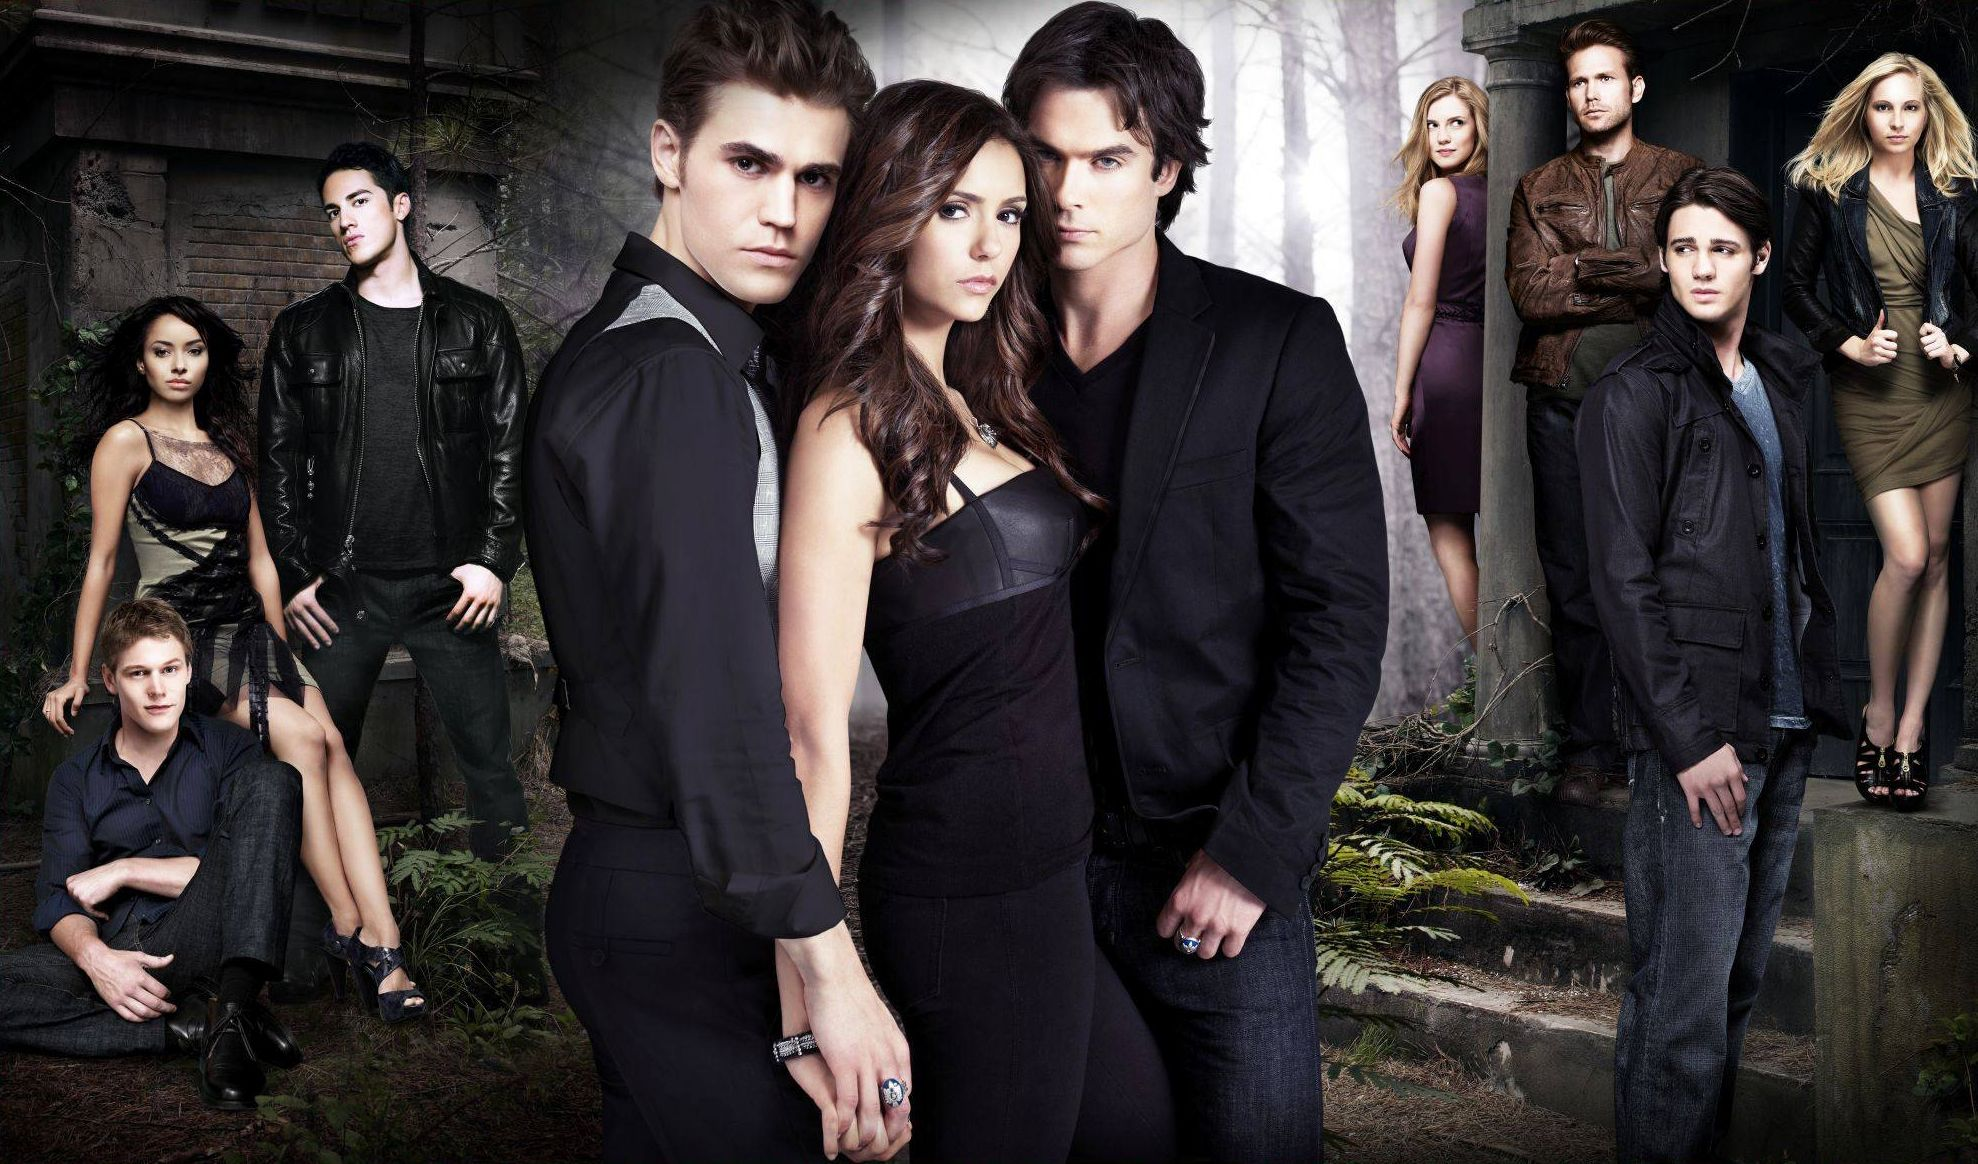 watch tvd season 5 episode 4